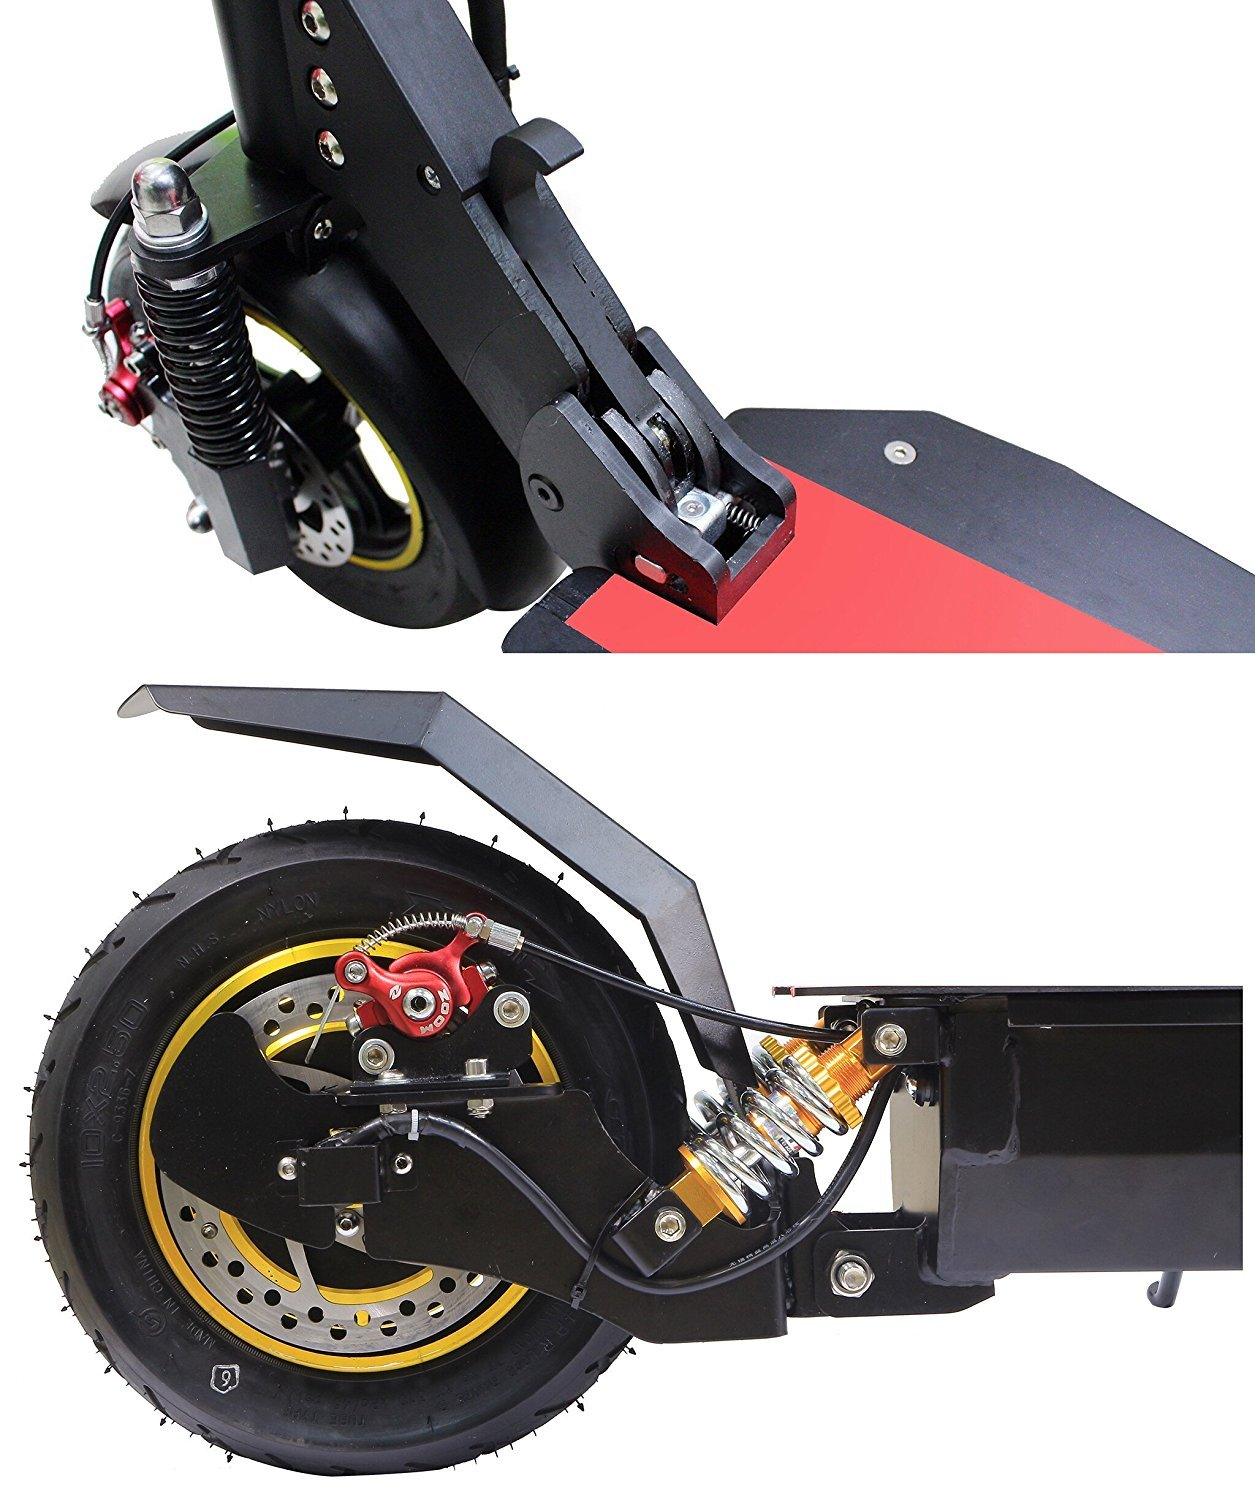 QIEWA Q1Hummer 800Watts 37MPH Electric Scooter with Dual Disk Brakes Max Driving Range Up to 65 Miles,550lbs Max Load Weight with 26Ah 48V Lithium ...